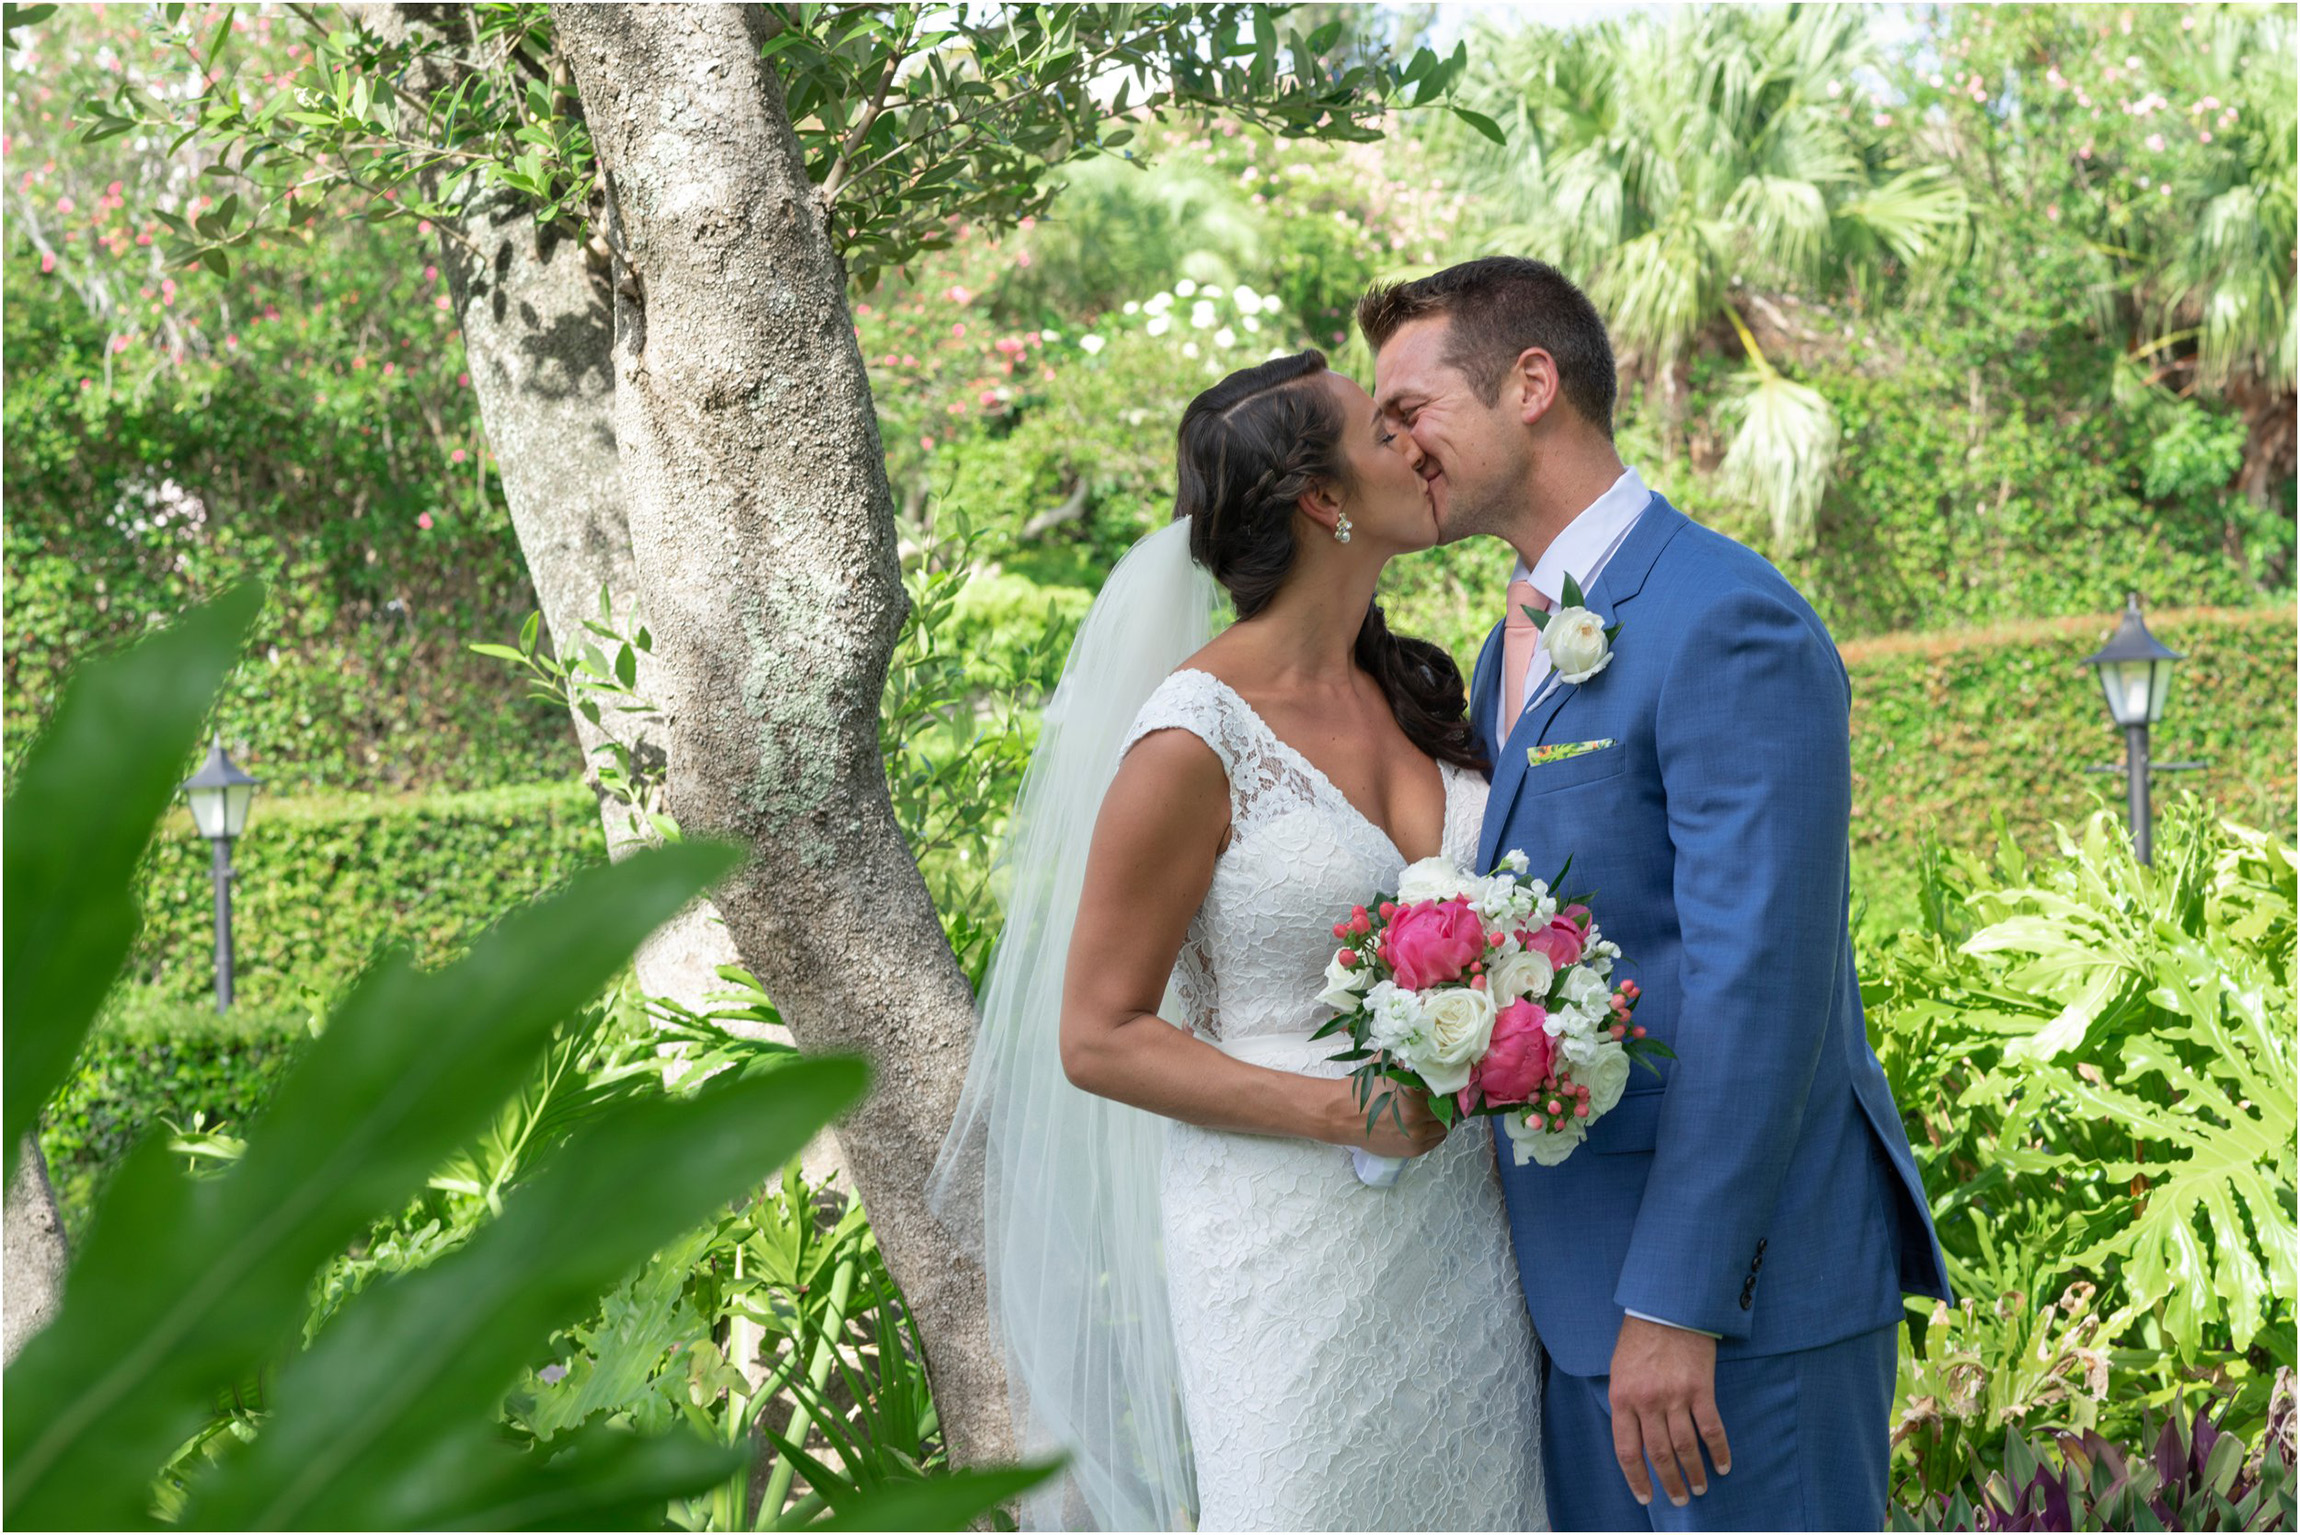 ©FianderFoto_Bermuda Wedding Photographer_Fairmont Southampton_Wedding_Anna_Thomas_032.jpg